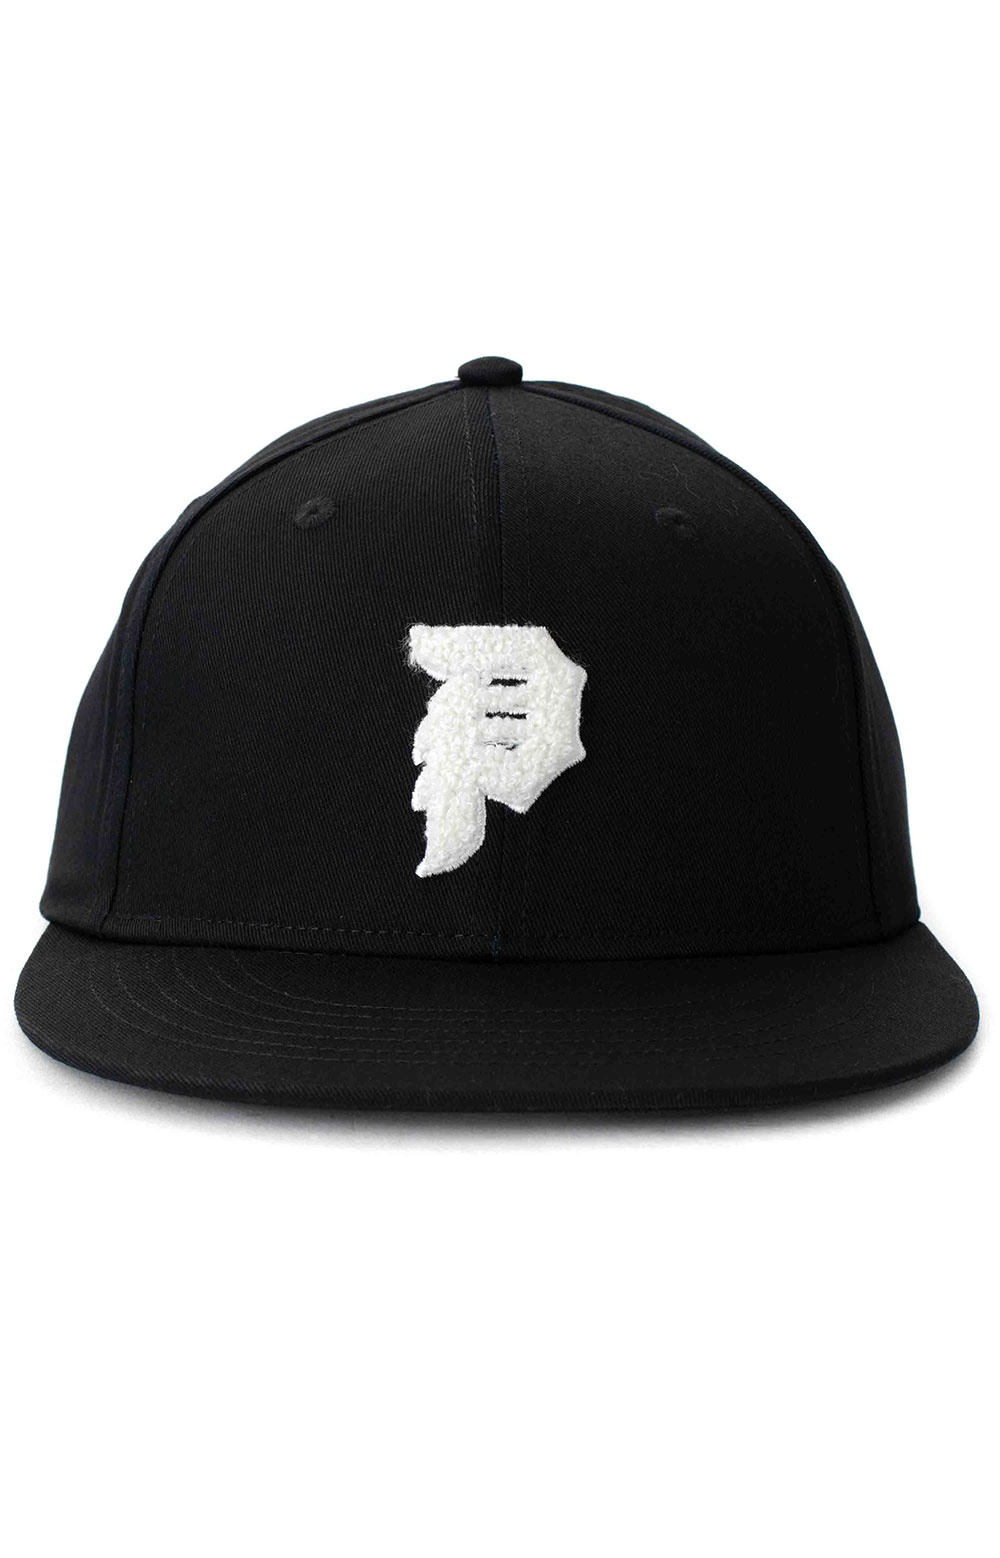 Dirty P Chenille Snap-Back Hat - Black  2